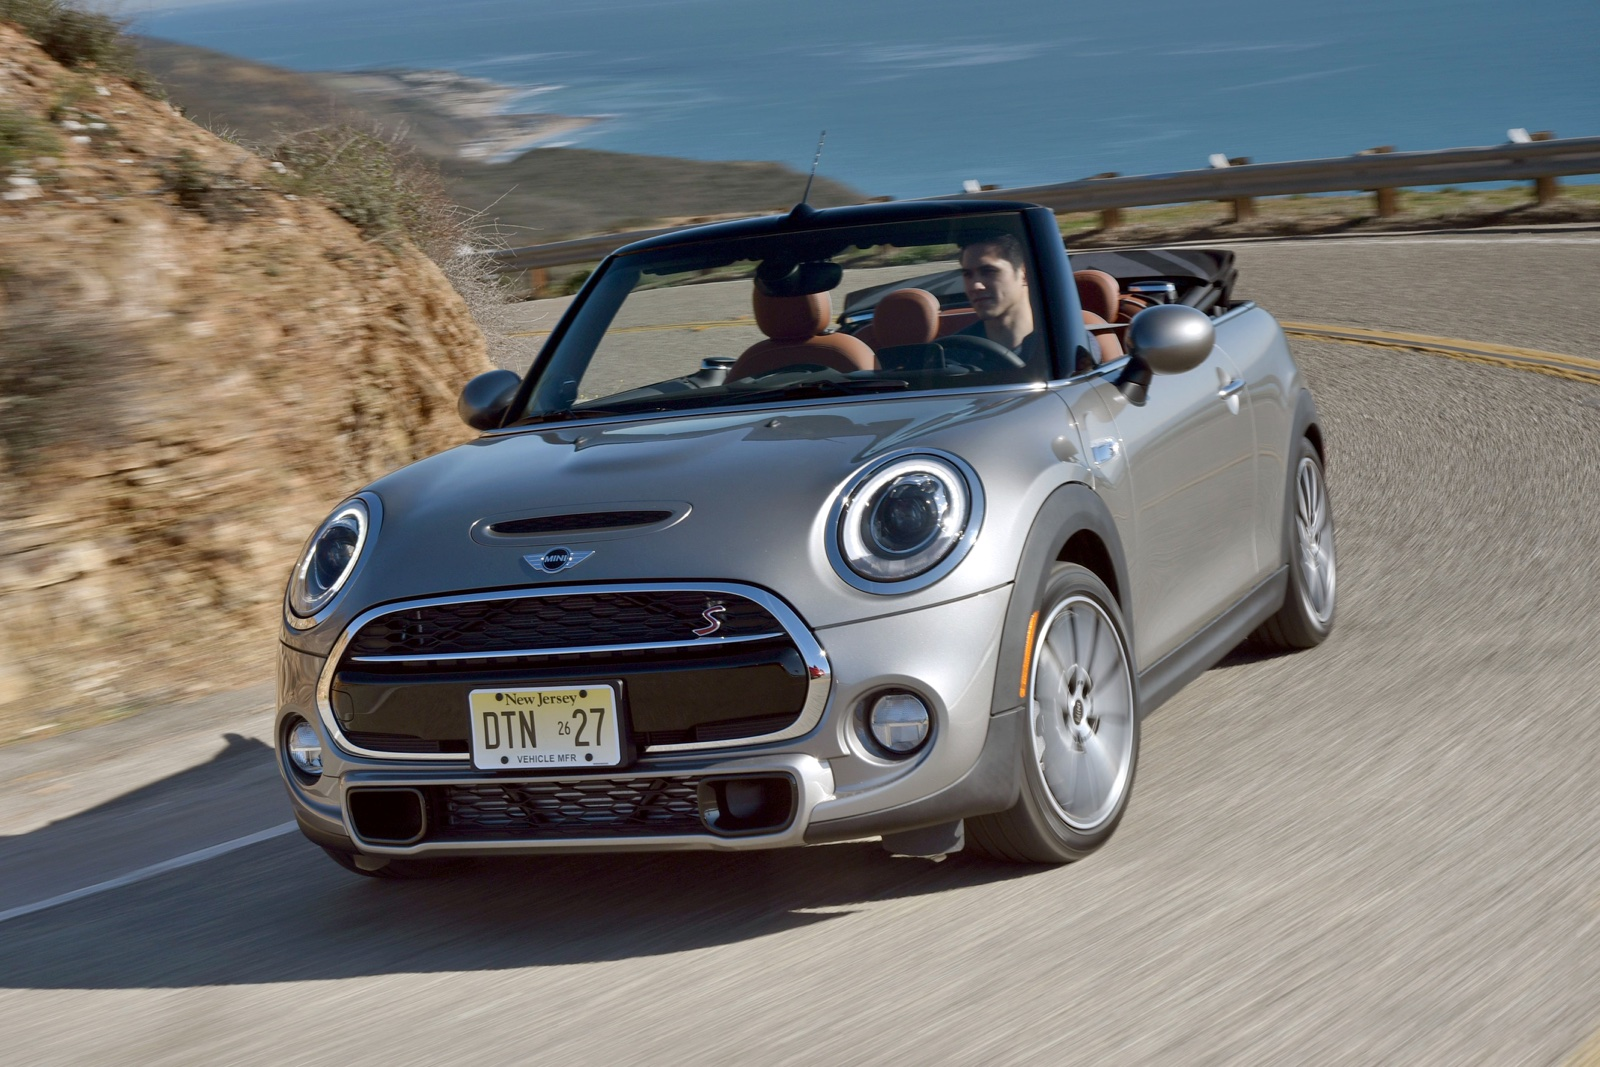 Mini Cooper S Cabriolet Review Car News Reviews